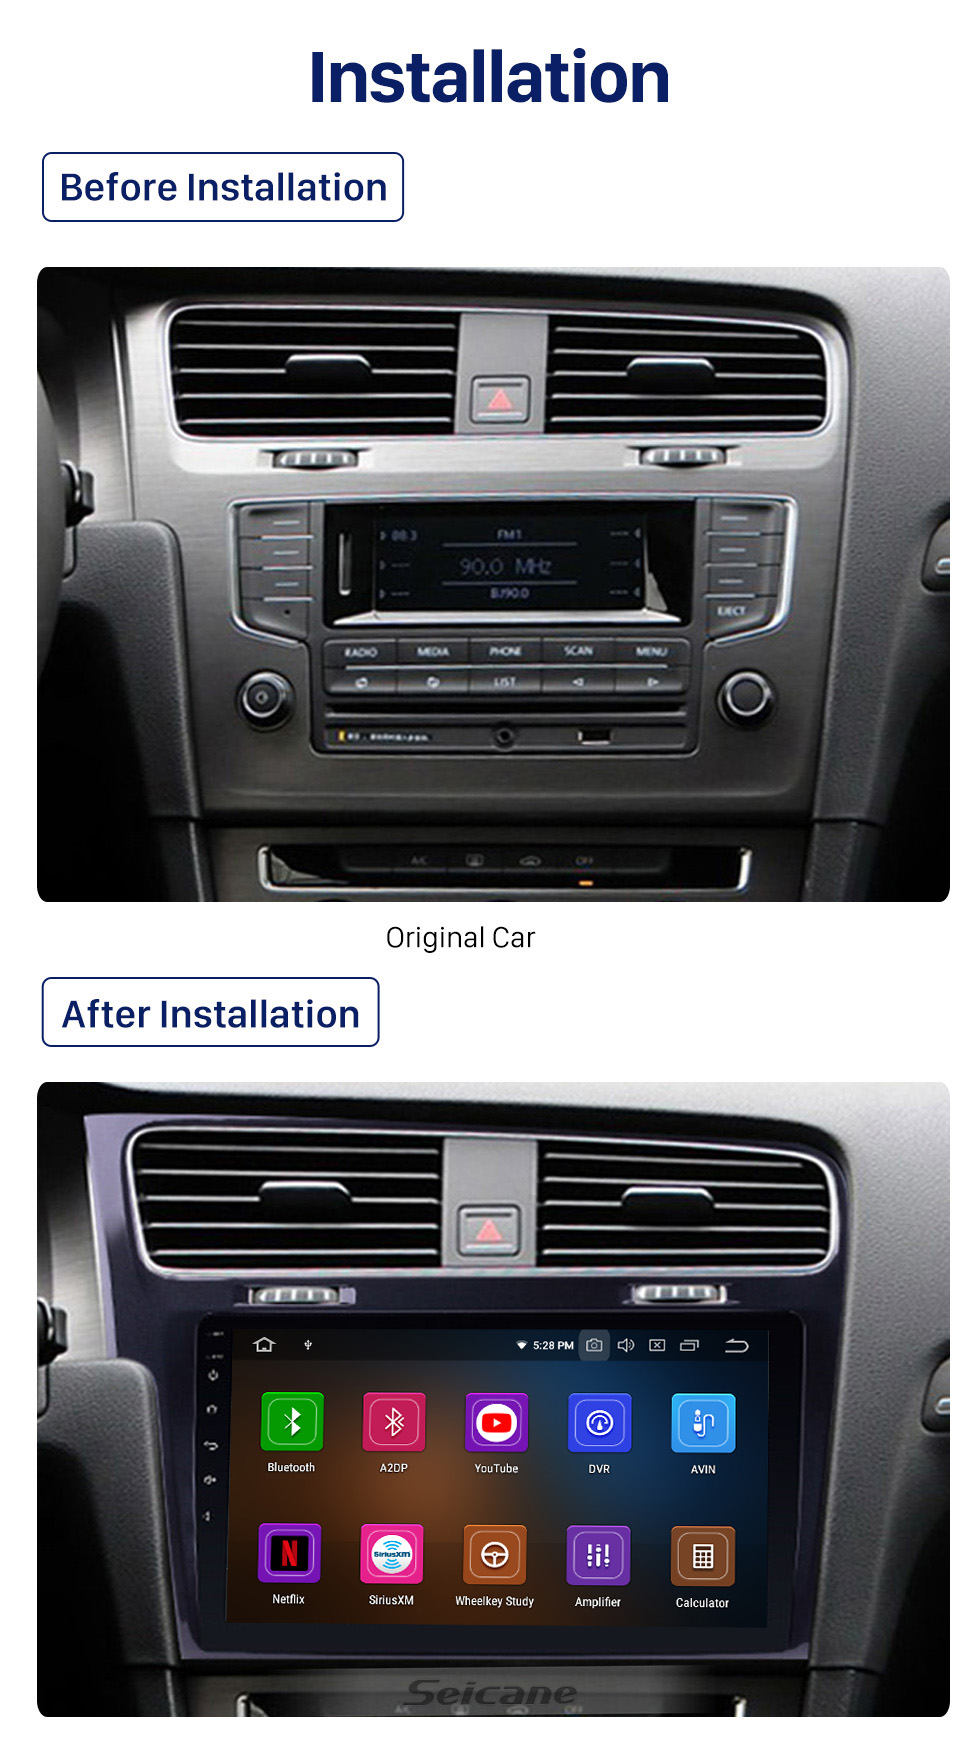 Seicane 10.1 inch For 2013 2014 2015 VW Volkswagen Golf 7 LHD Android 10.0 Radio GPS Navigation Car stereo with 1024*600 Touchscreen Mirror Link OBD2 Steering Wheel Control Rearview Camera